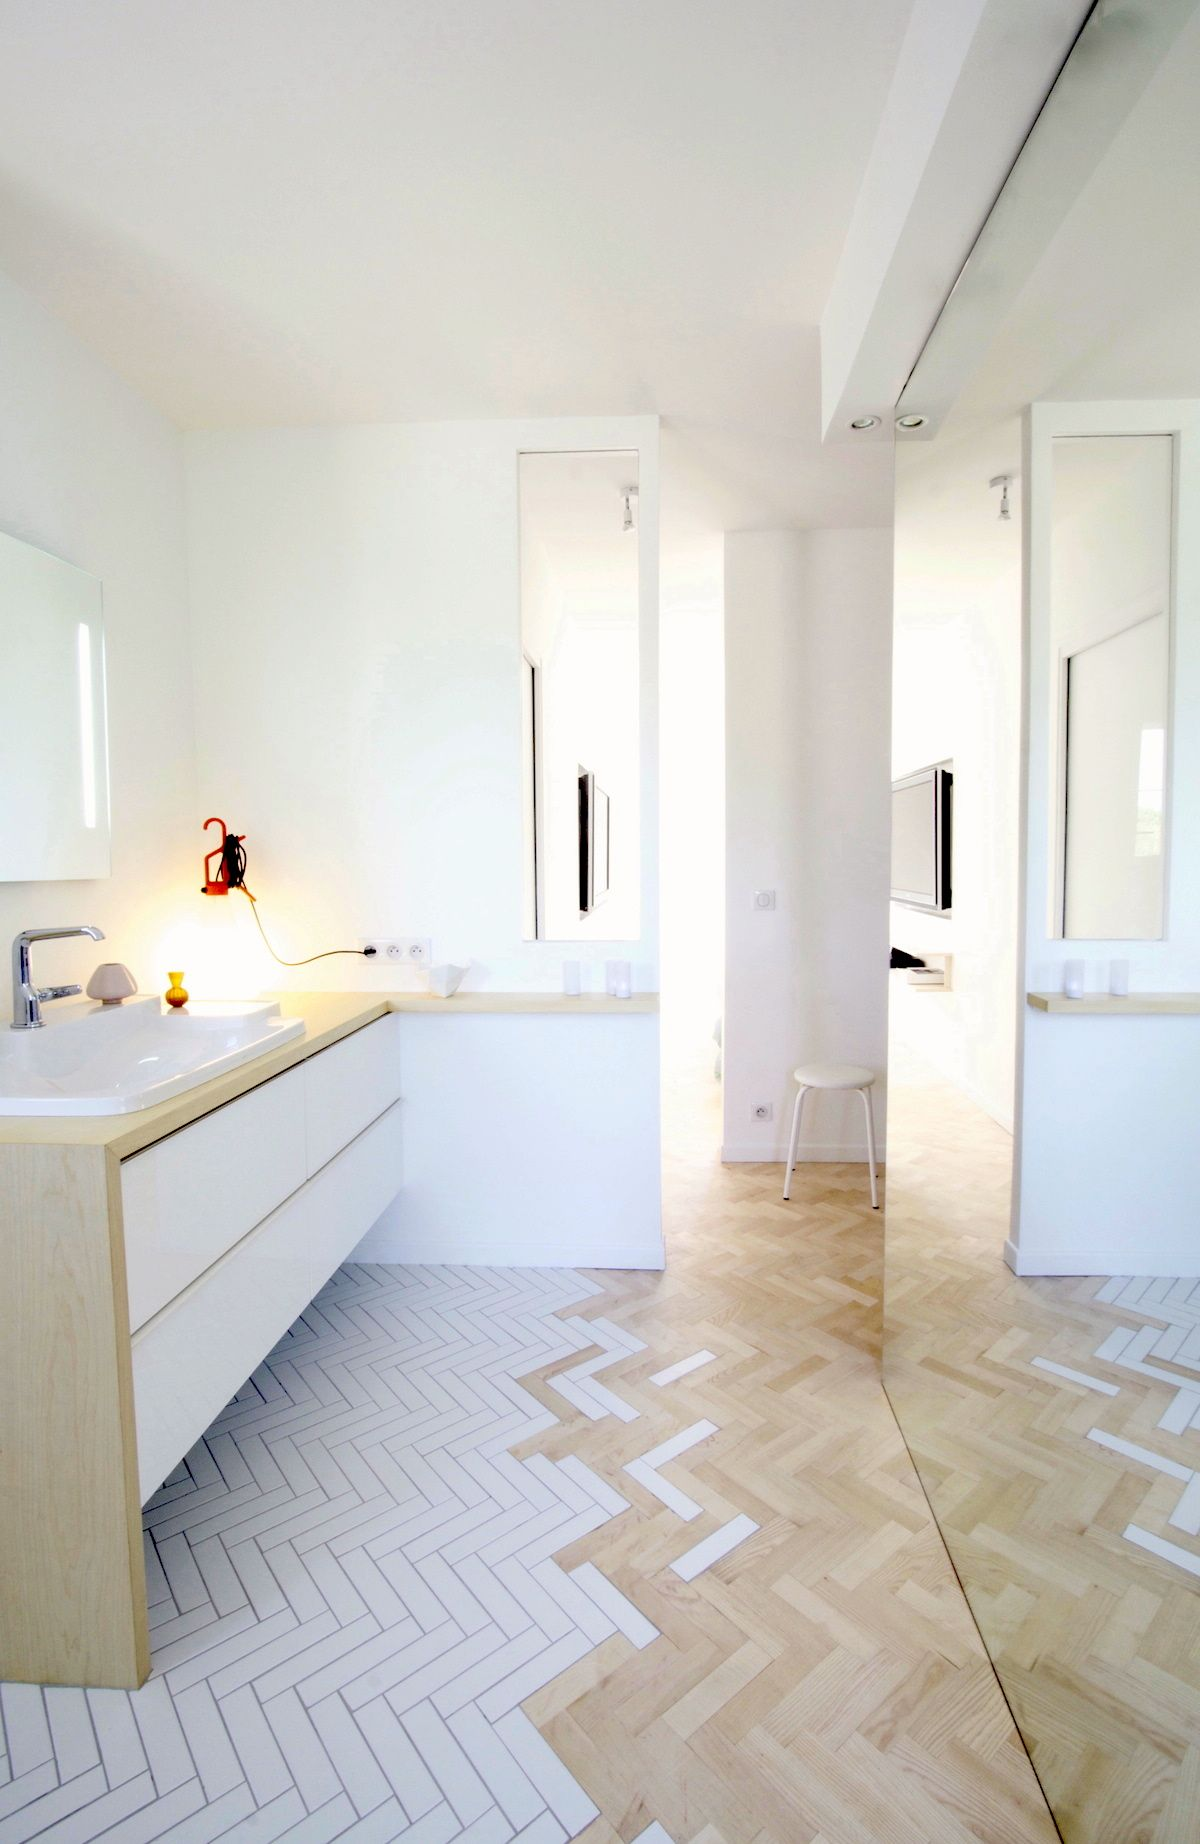 Floor Transition | Bathrooms | Pinterest | Herringbone pattern, Tile ...